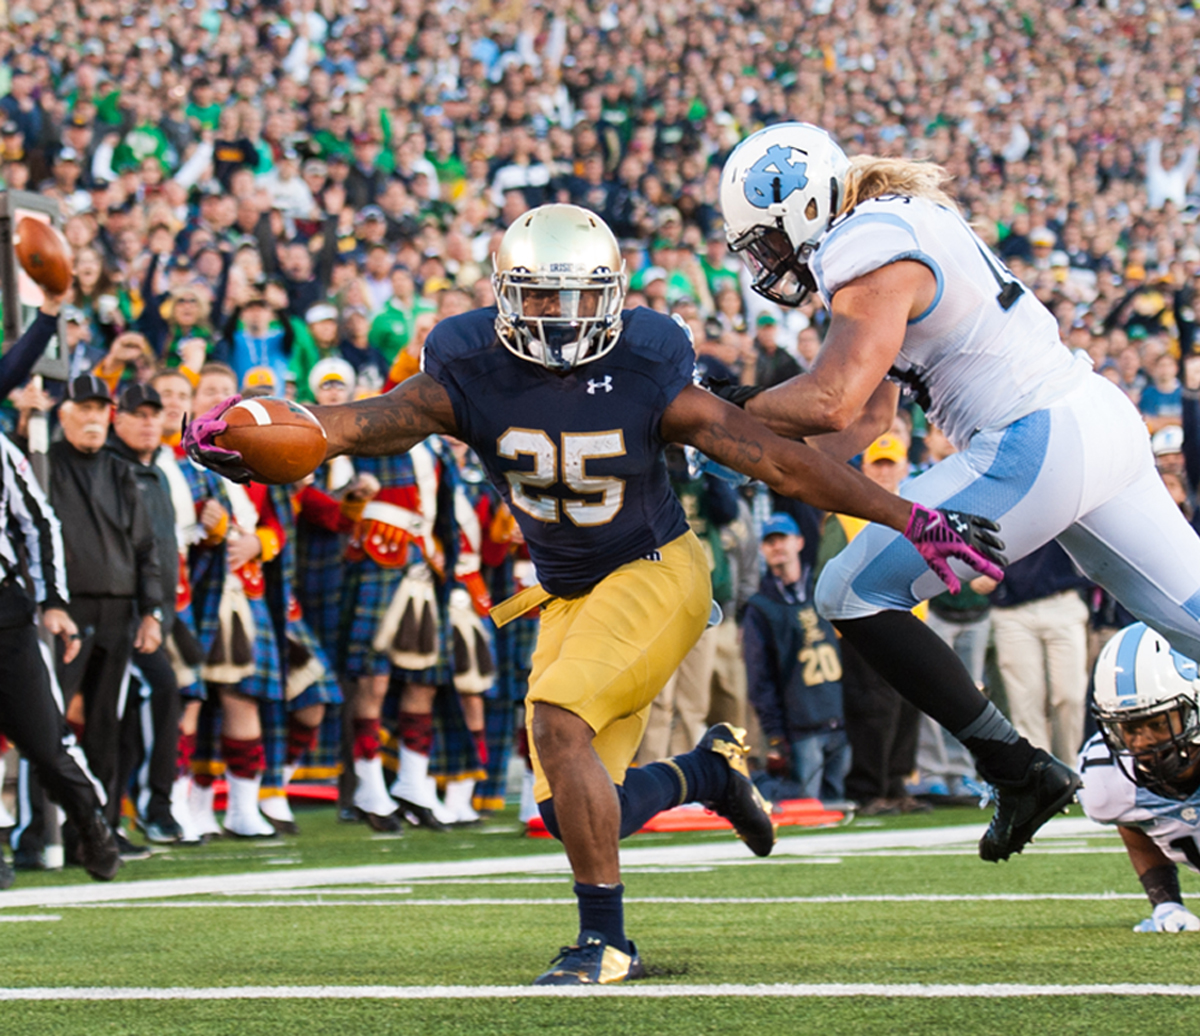 Irish sophomore running back Tarean Folston extends for one of his three touchdowns during Notre Dame's 50-43 victory over North Carolina on Saturday at Notre Dame Stadium.